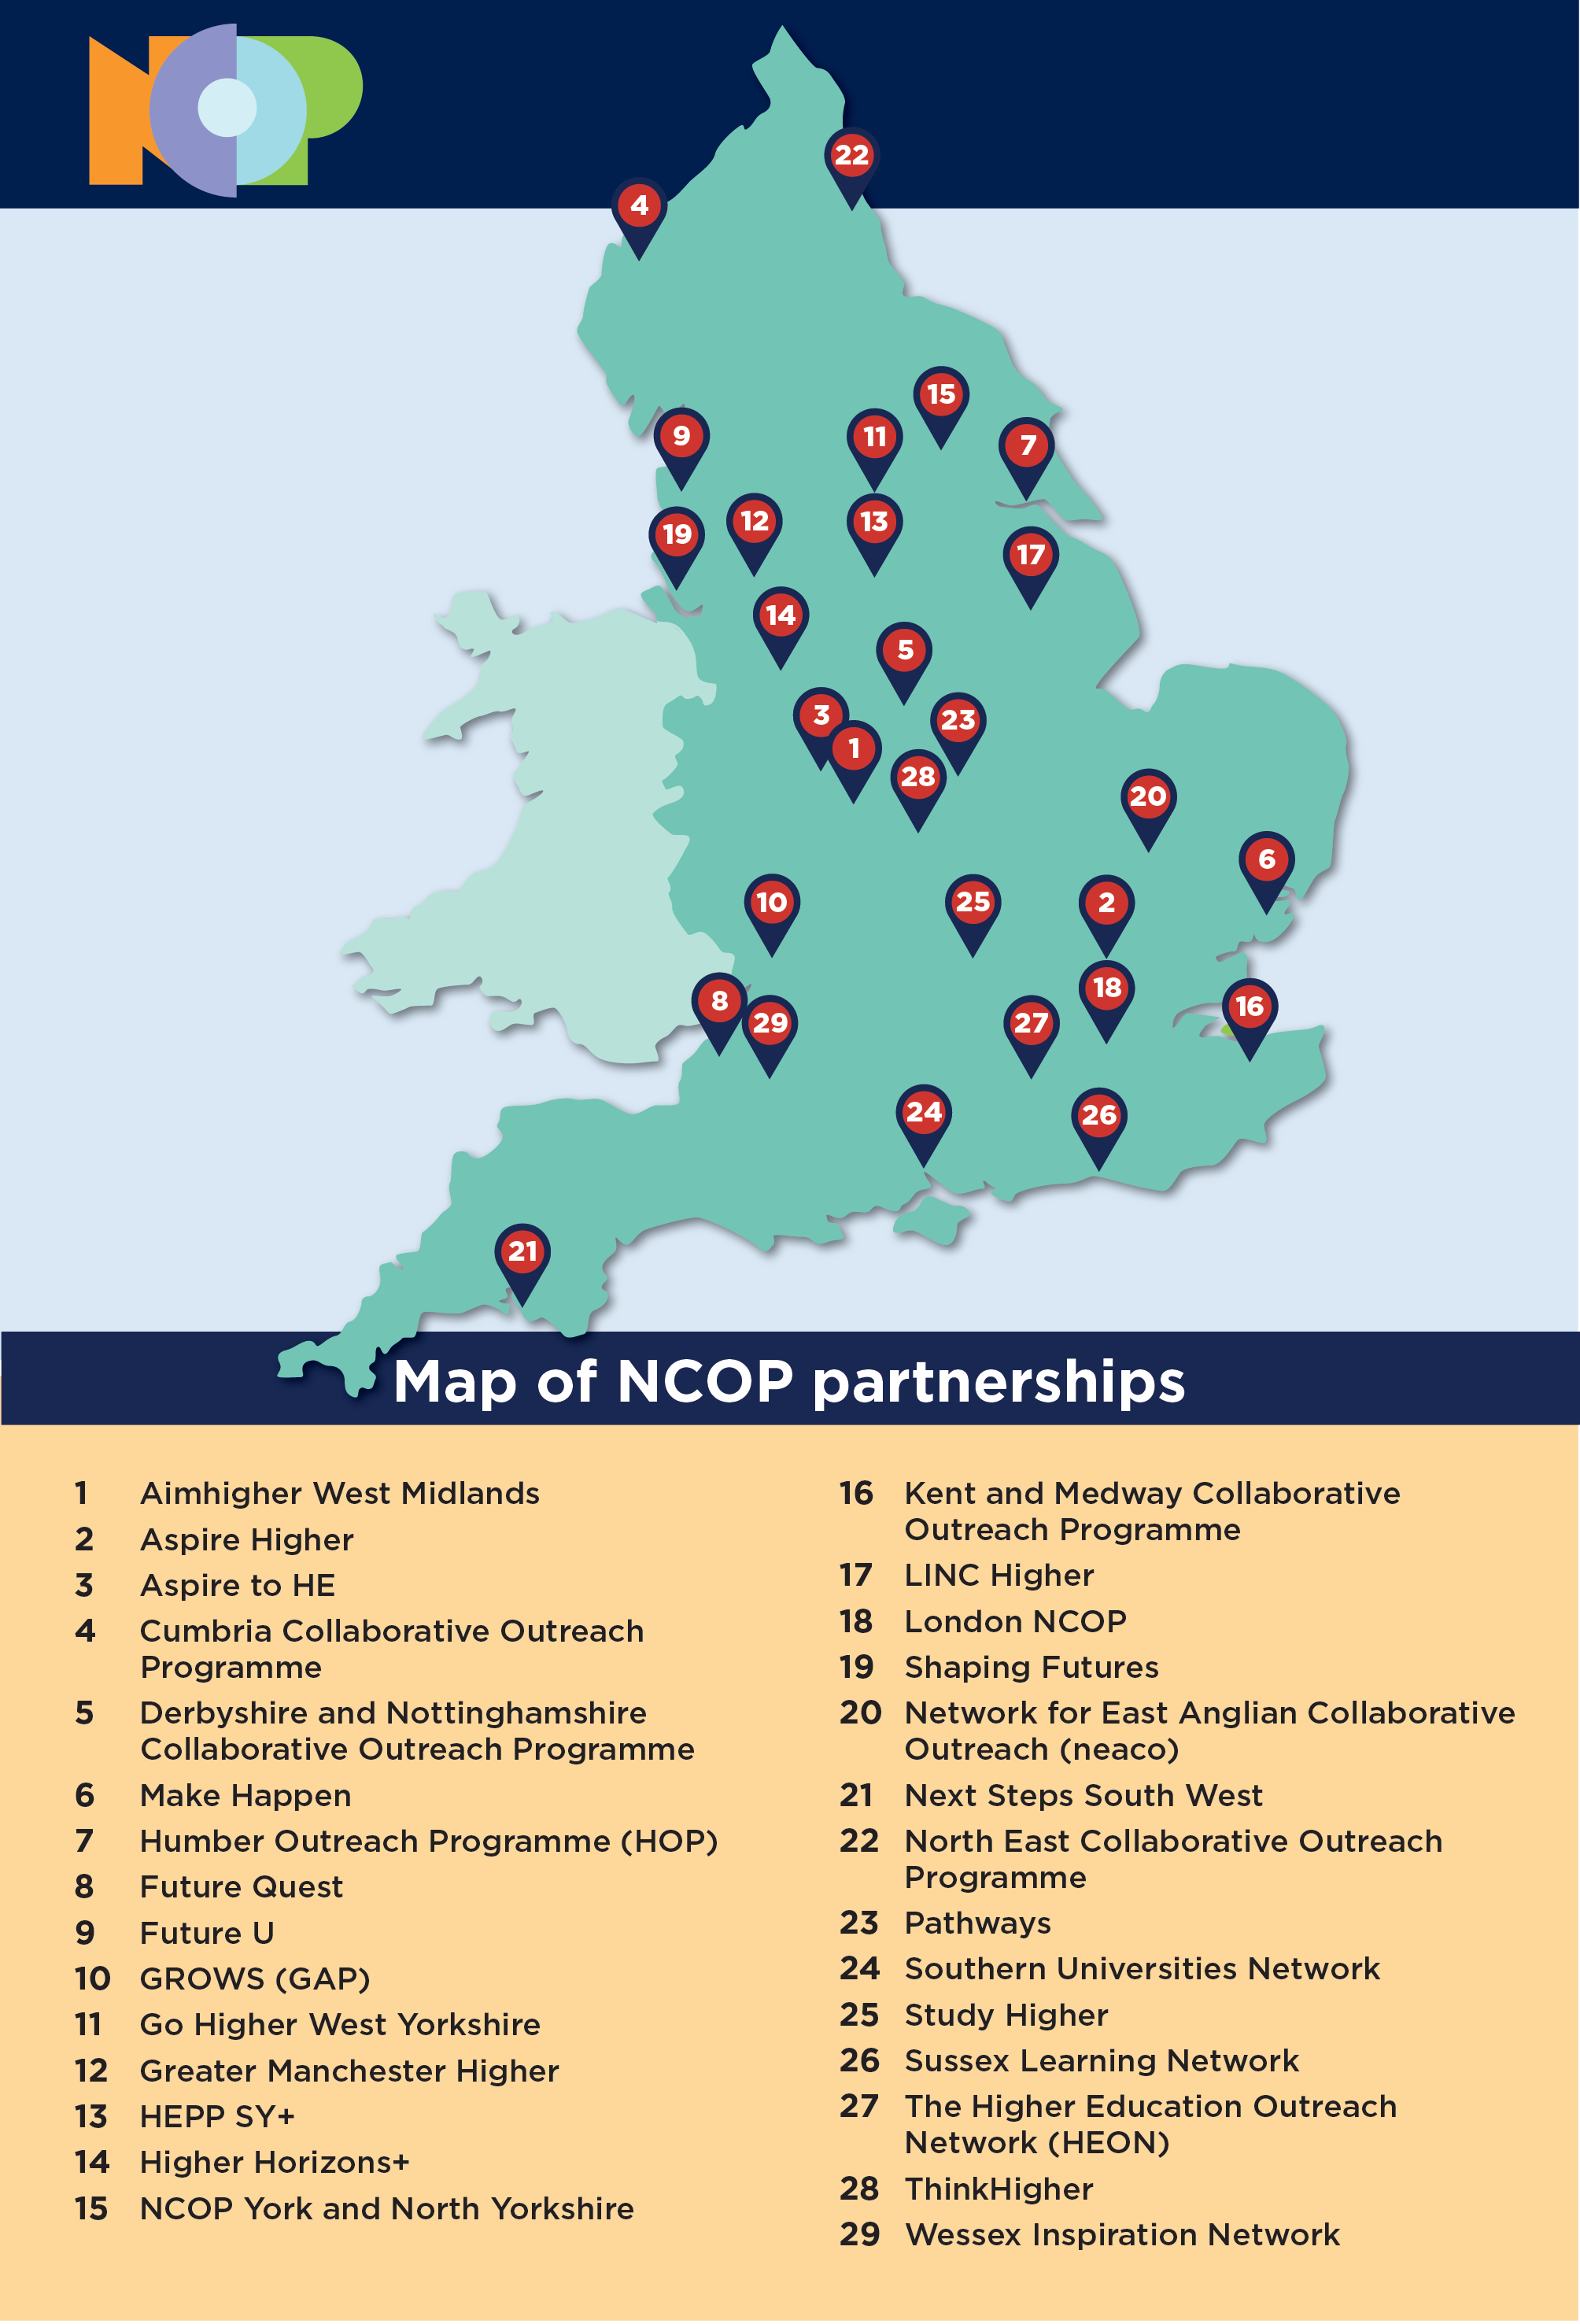 Map of NCOP partnerships